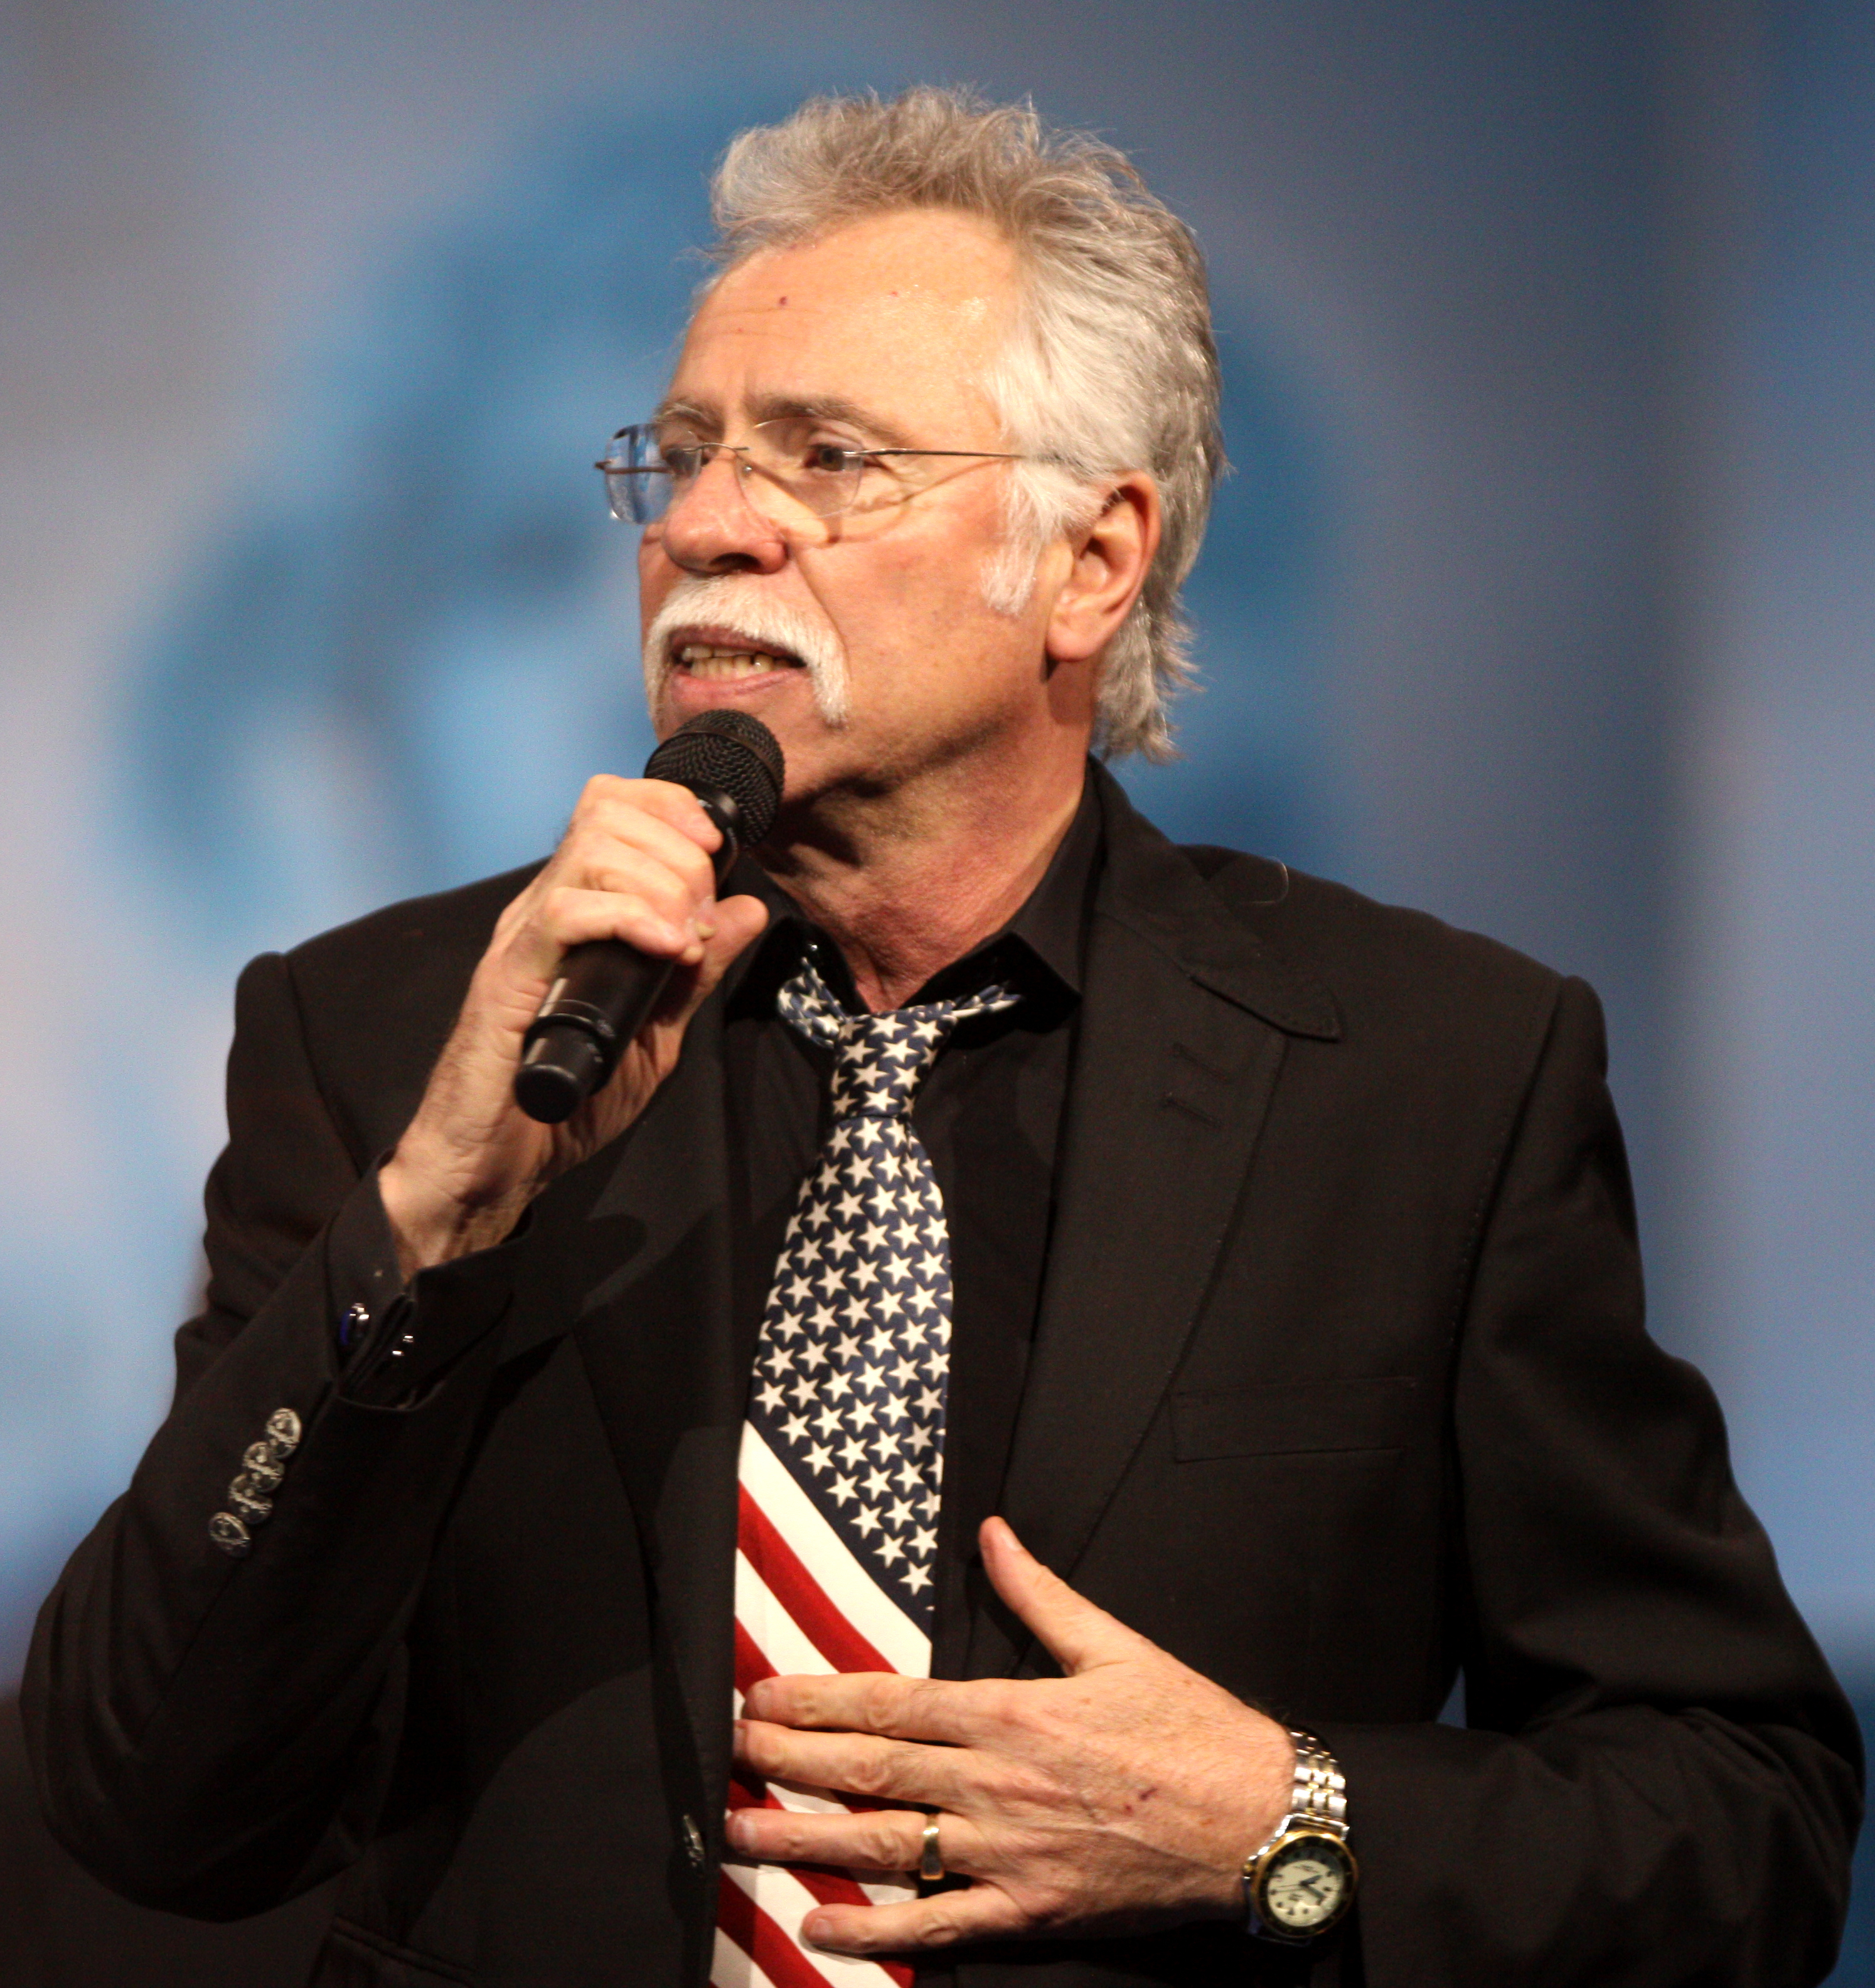 Joe Bonsall - Wikipedia